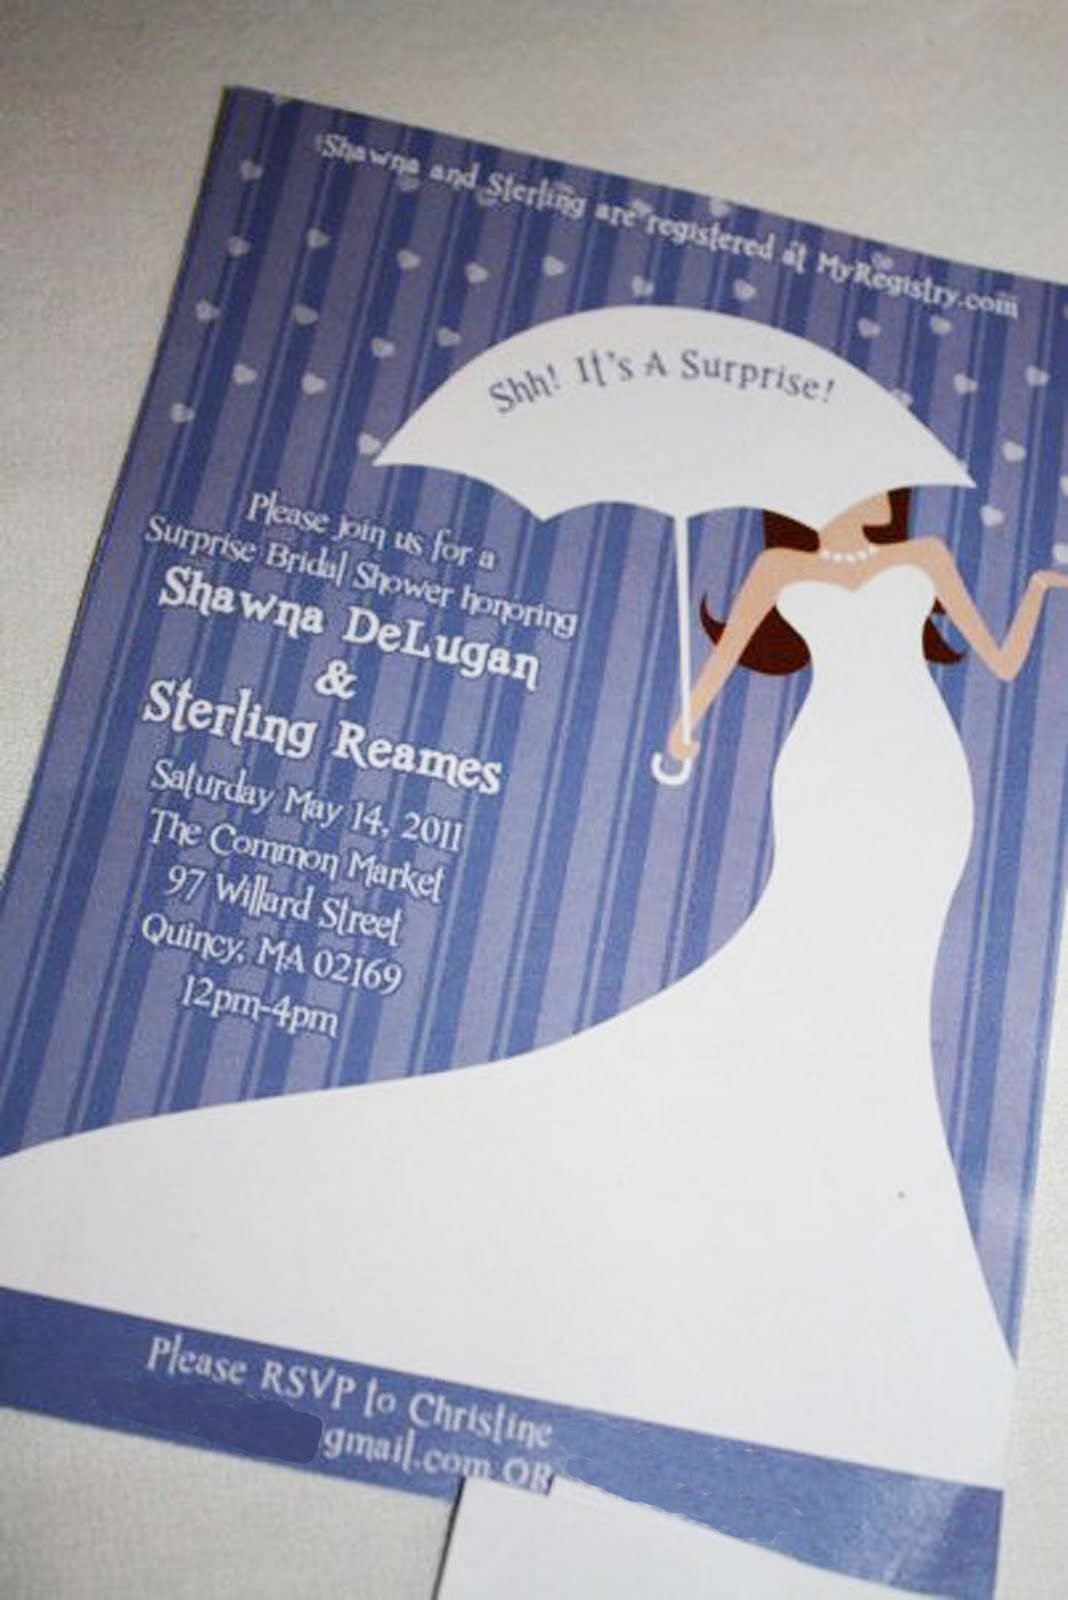 Gmail theme gone - Now That The Event Has Already Come And Gone I Can Share My Projects For Shawna S Bridal Shower The First Thing I Designed Was The Invitation